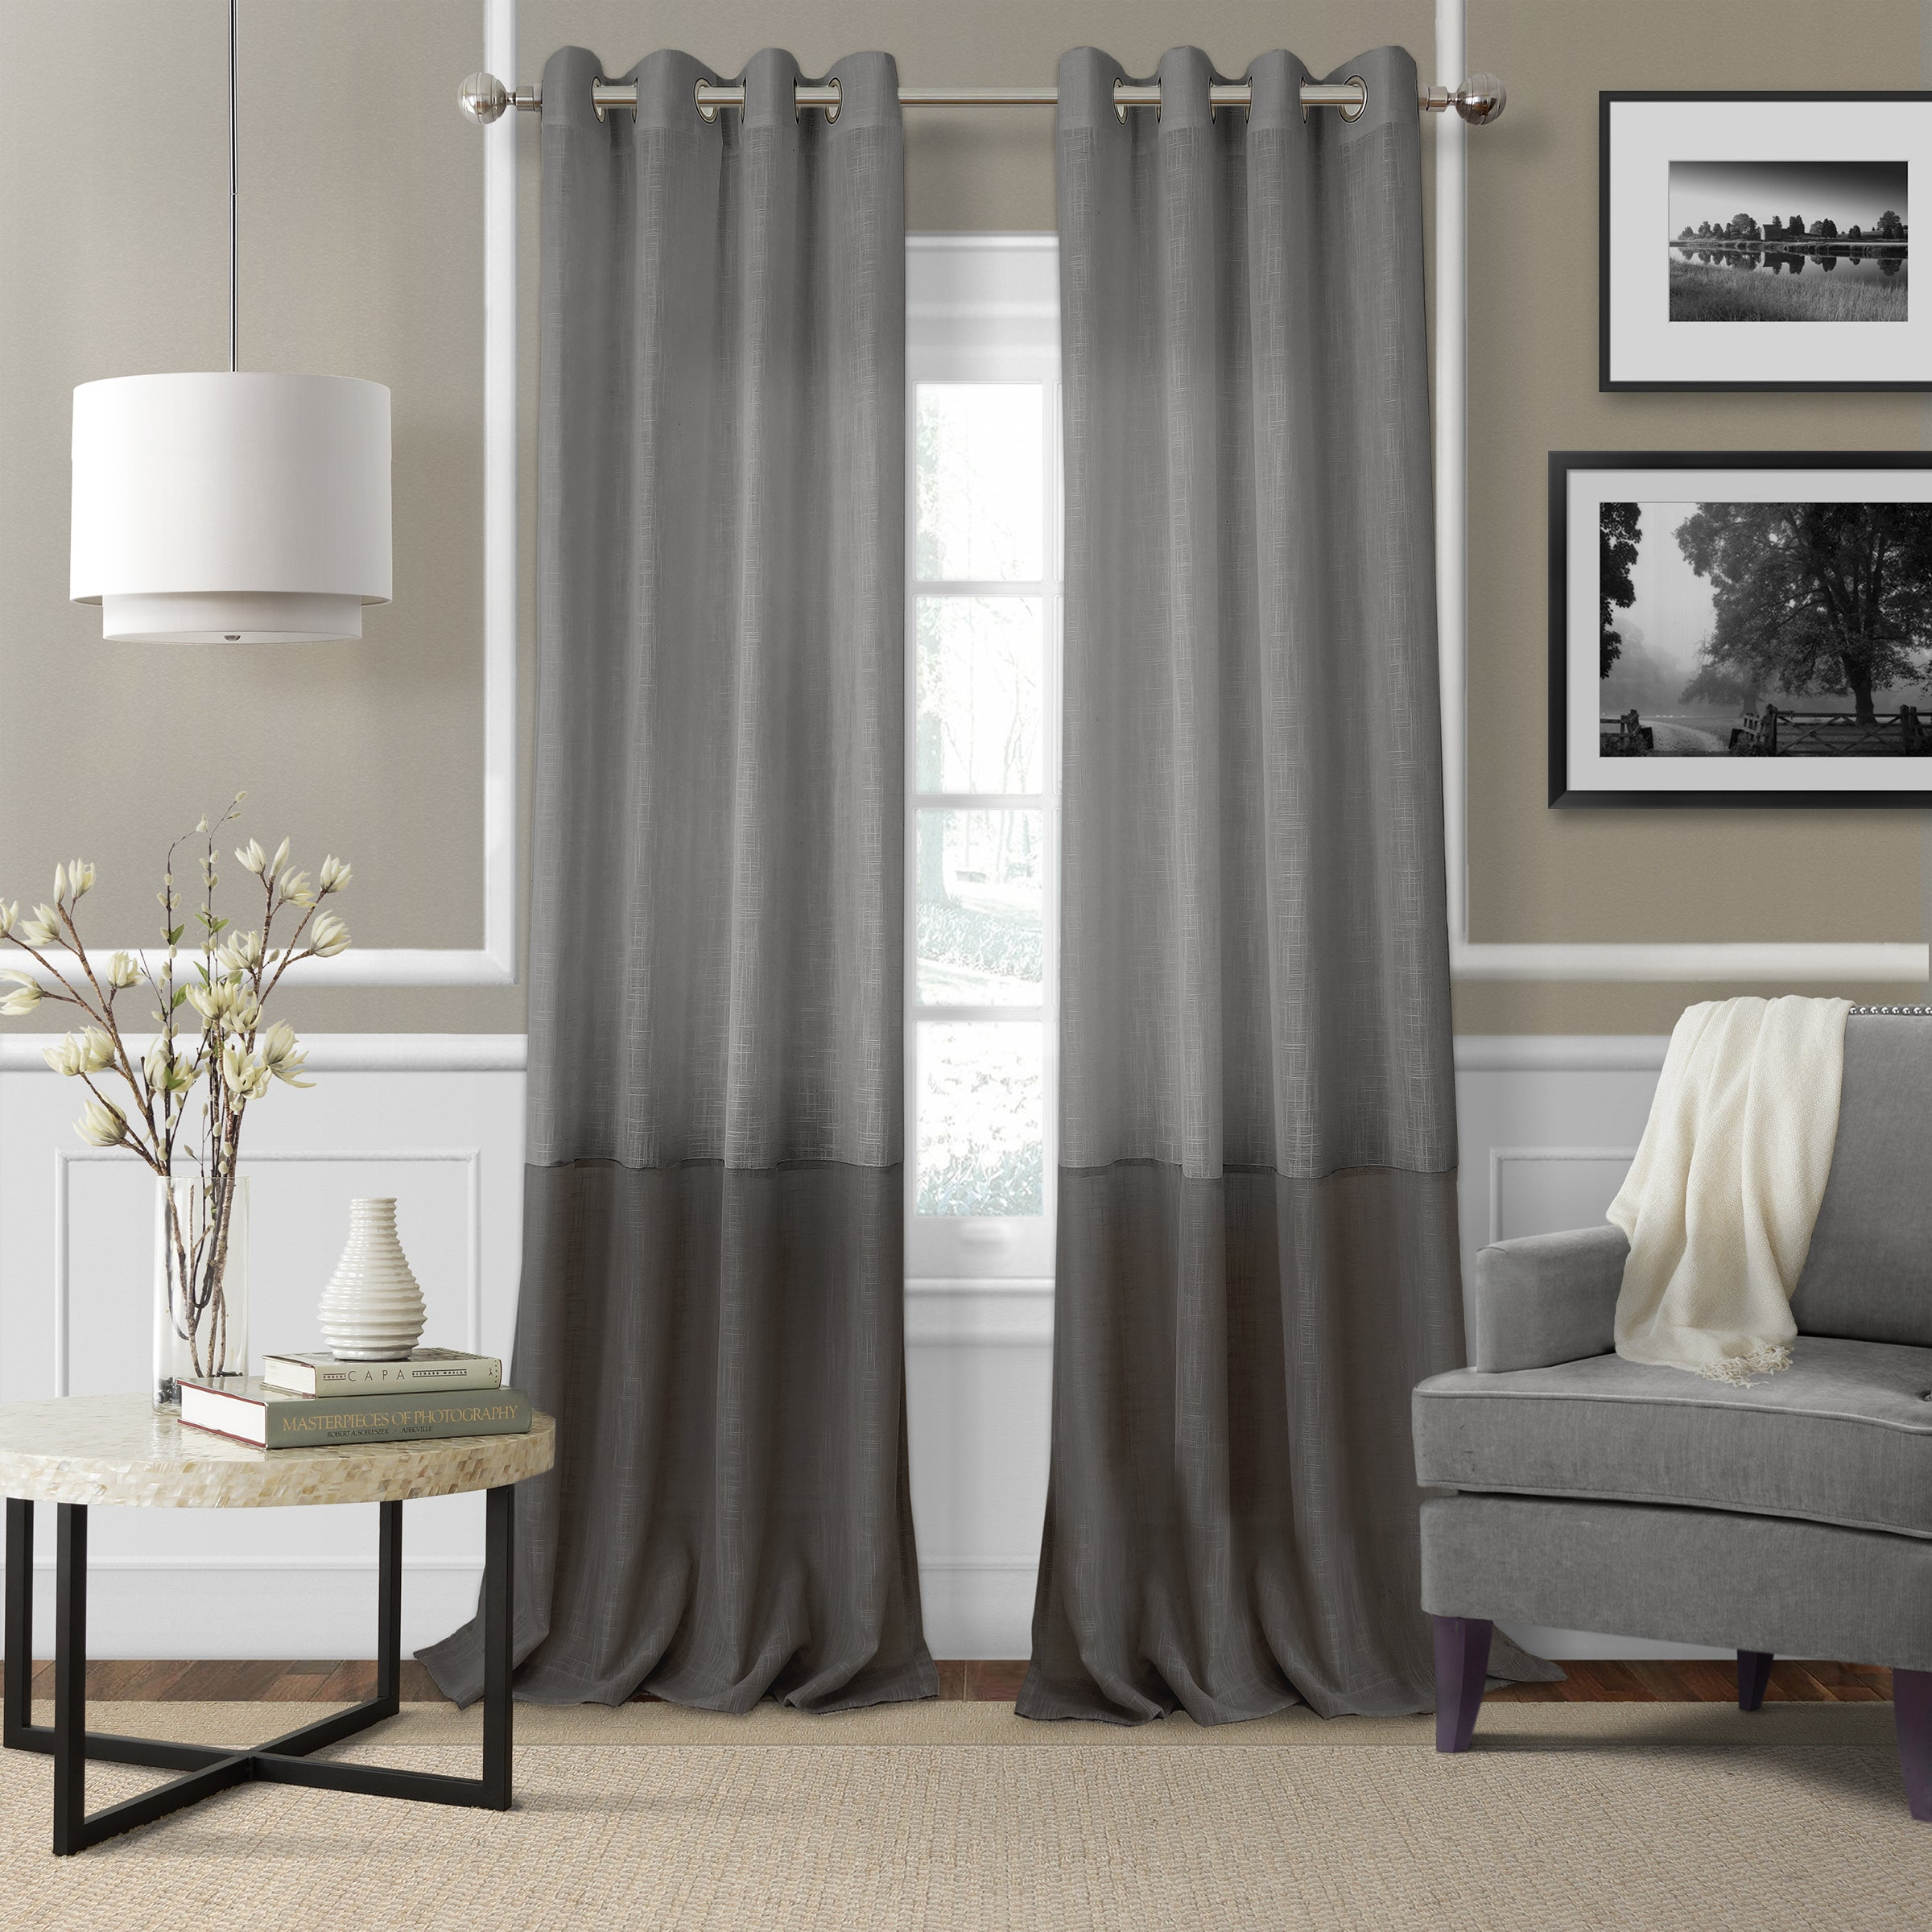 curtain l window curtains elrene copper in single x printed p metallic drapes zelda panel w